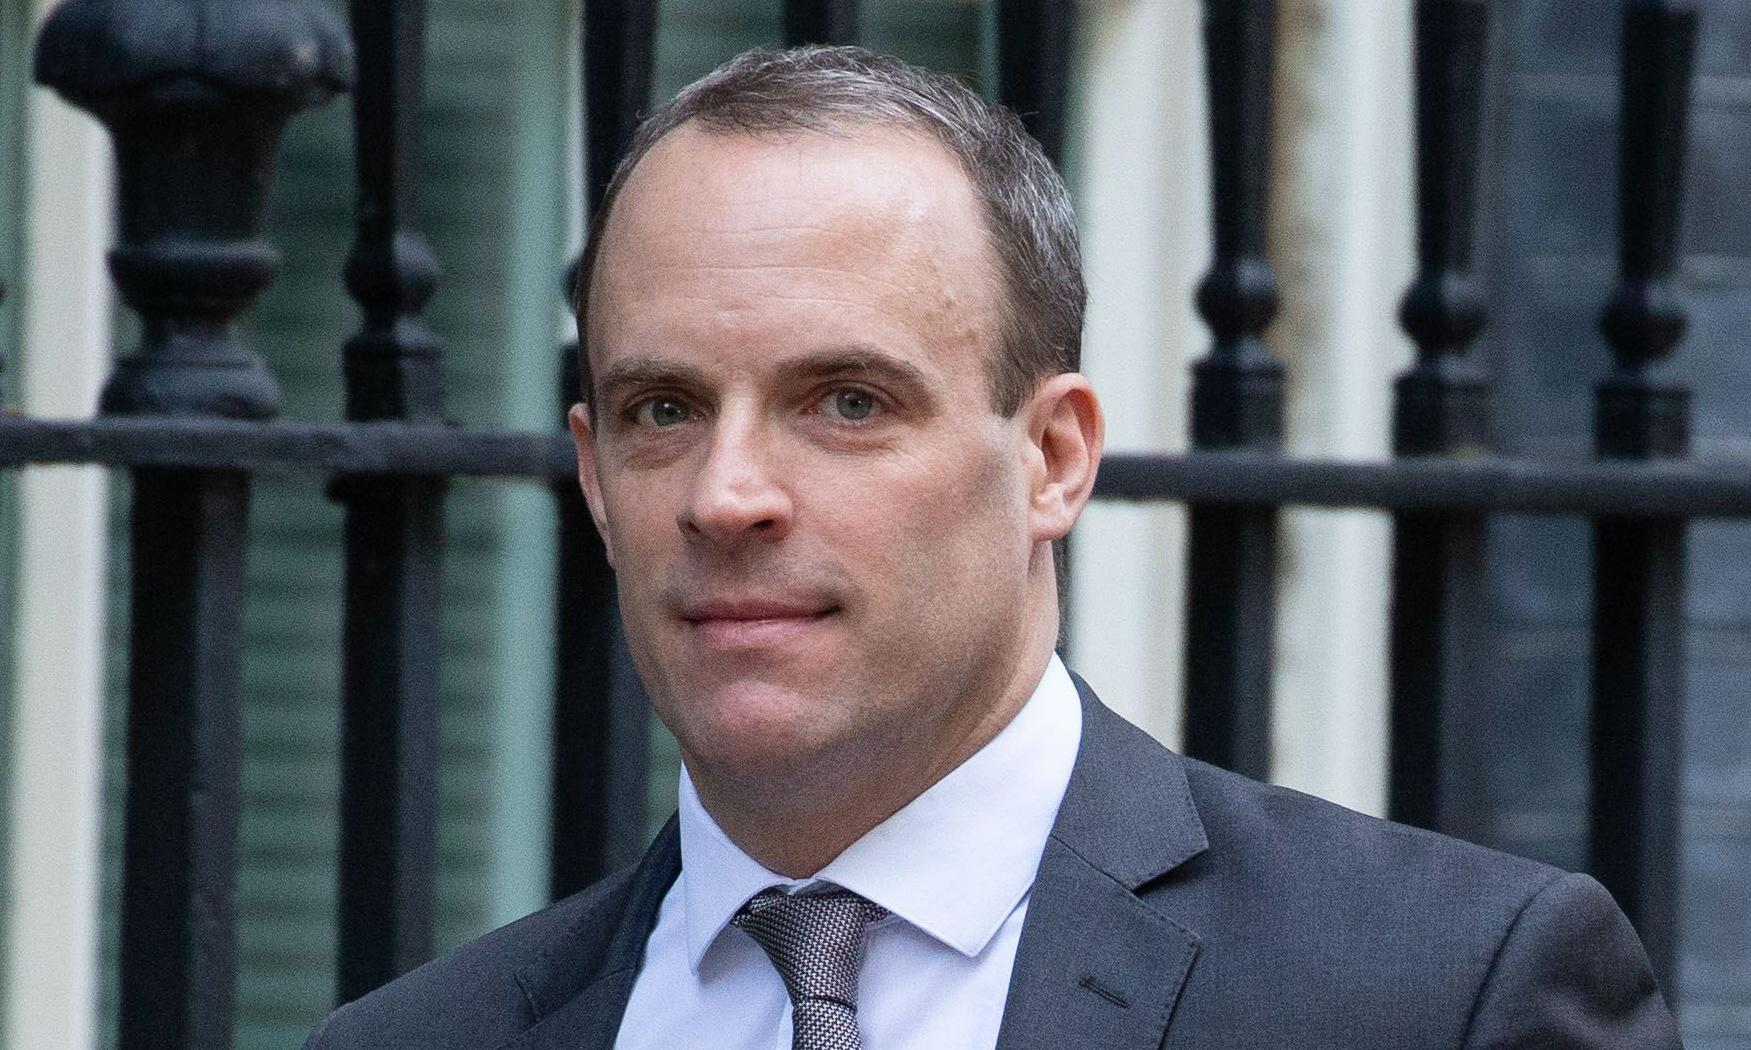 Brussels rejects 'fraudulent' Raab claim used in election video